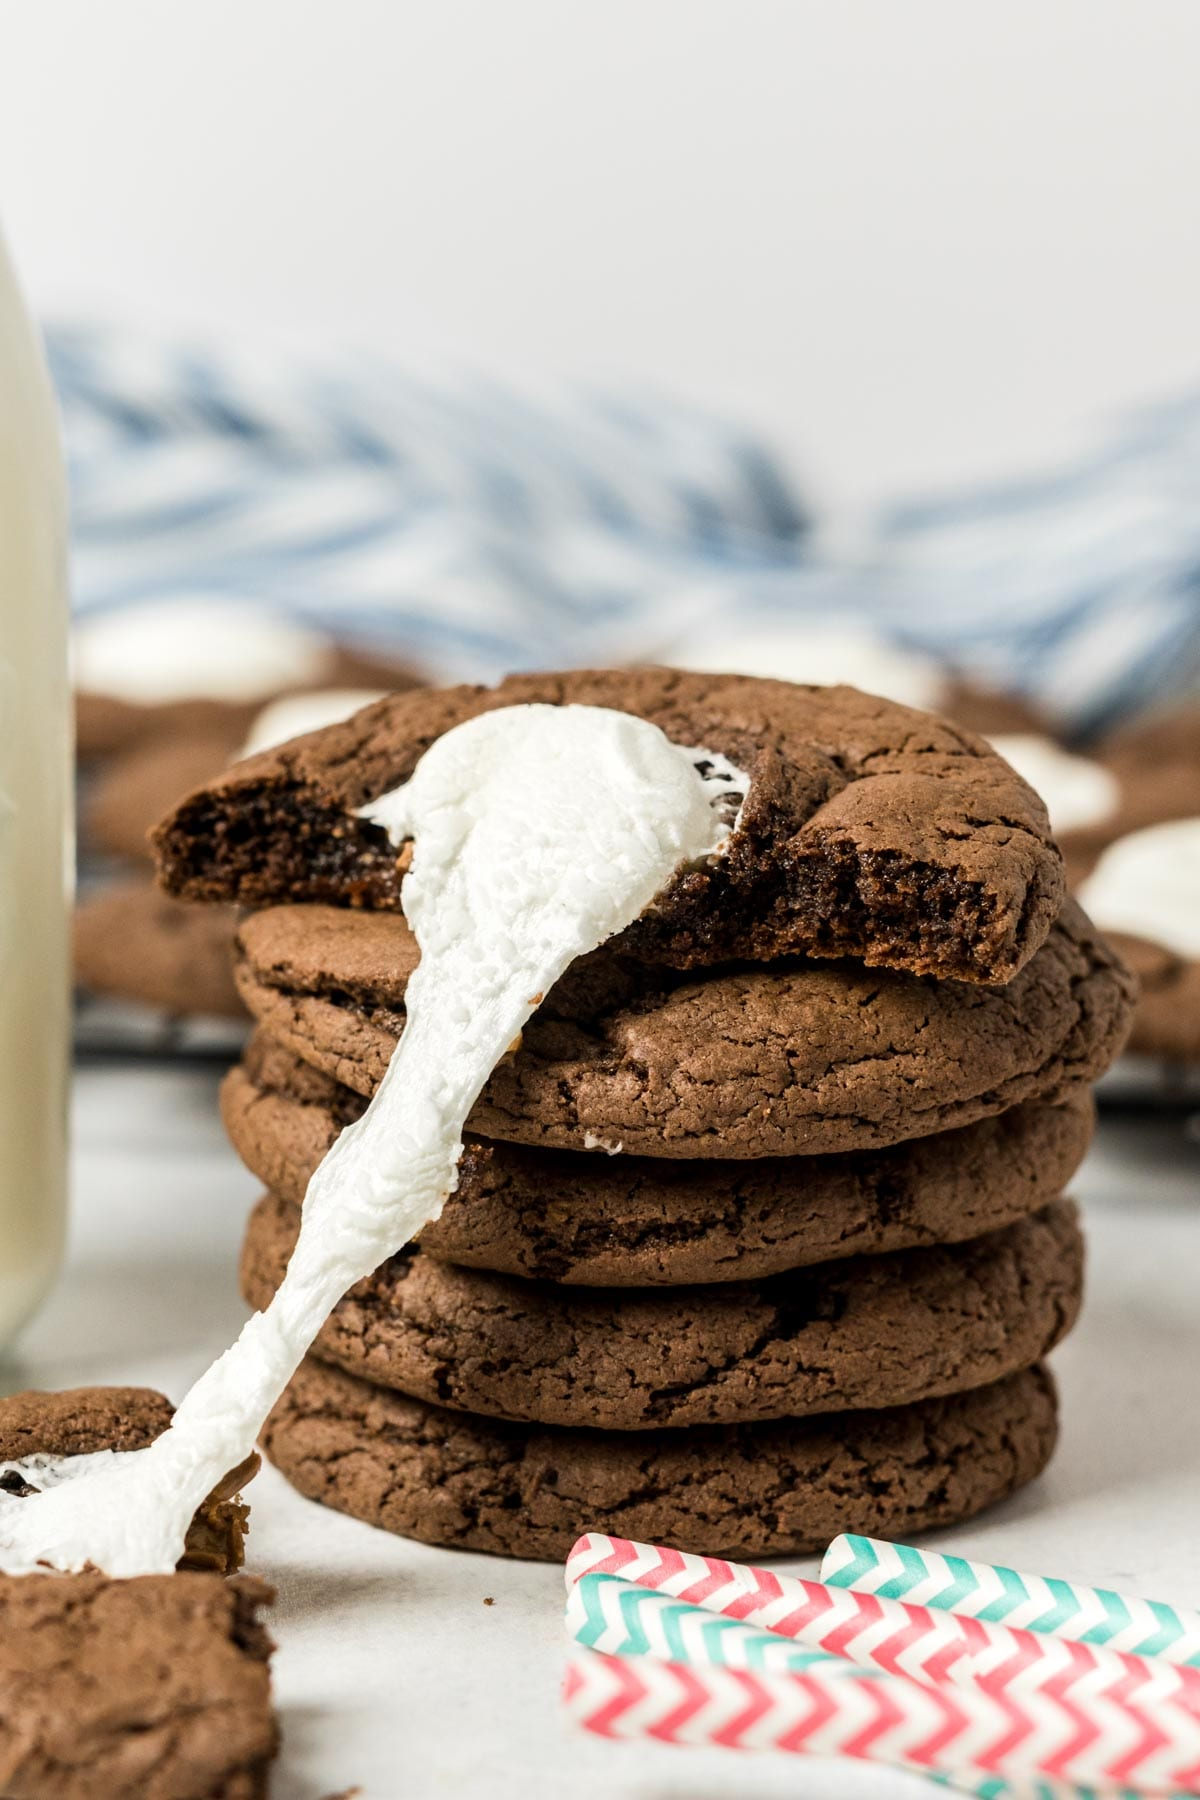 Stack of cookies with melted marshmallow.